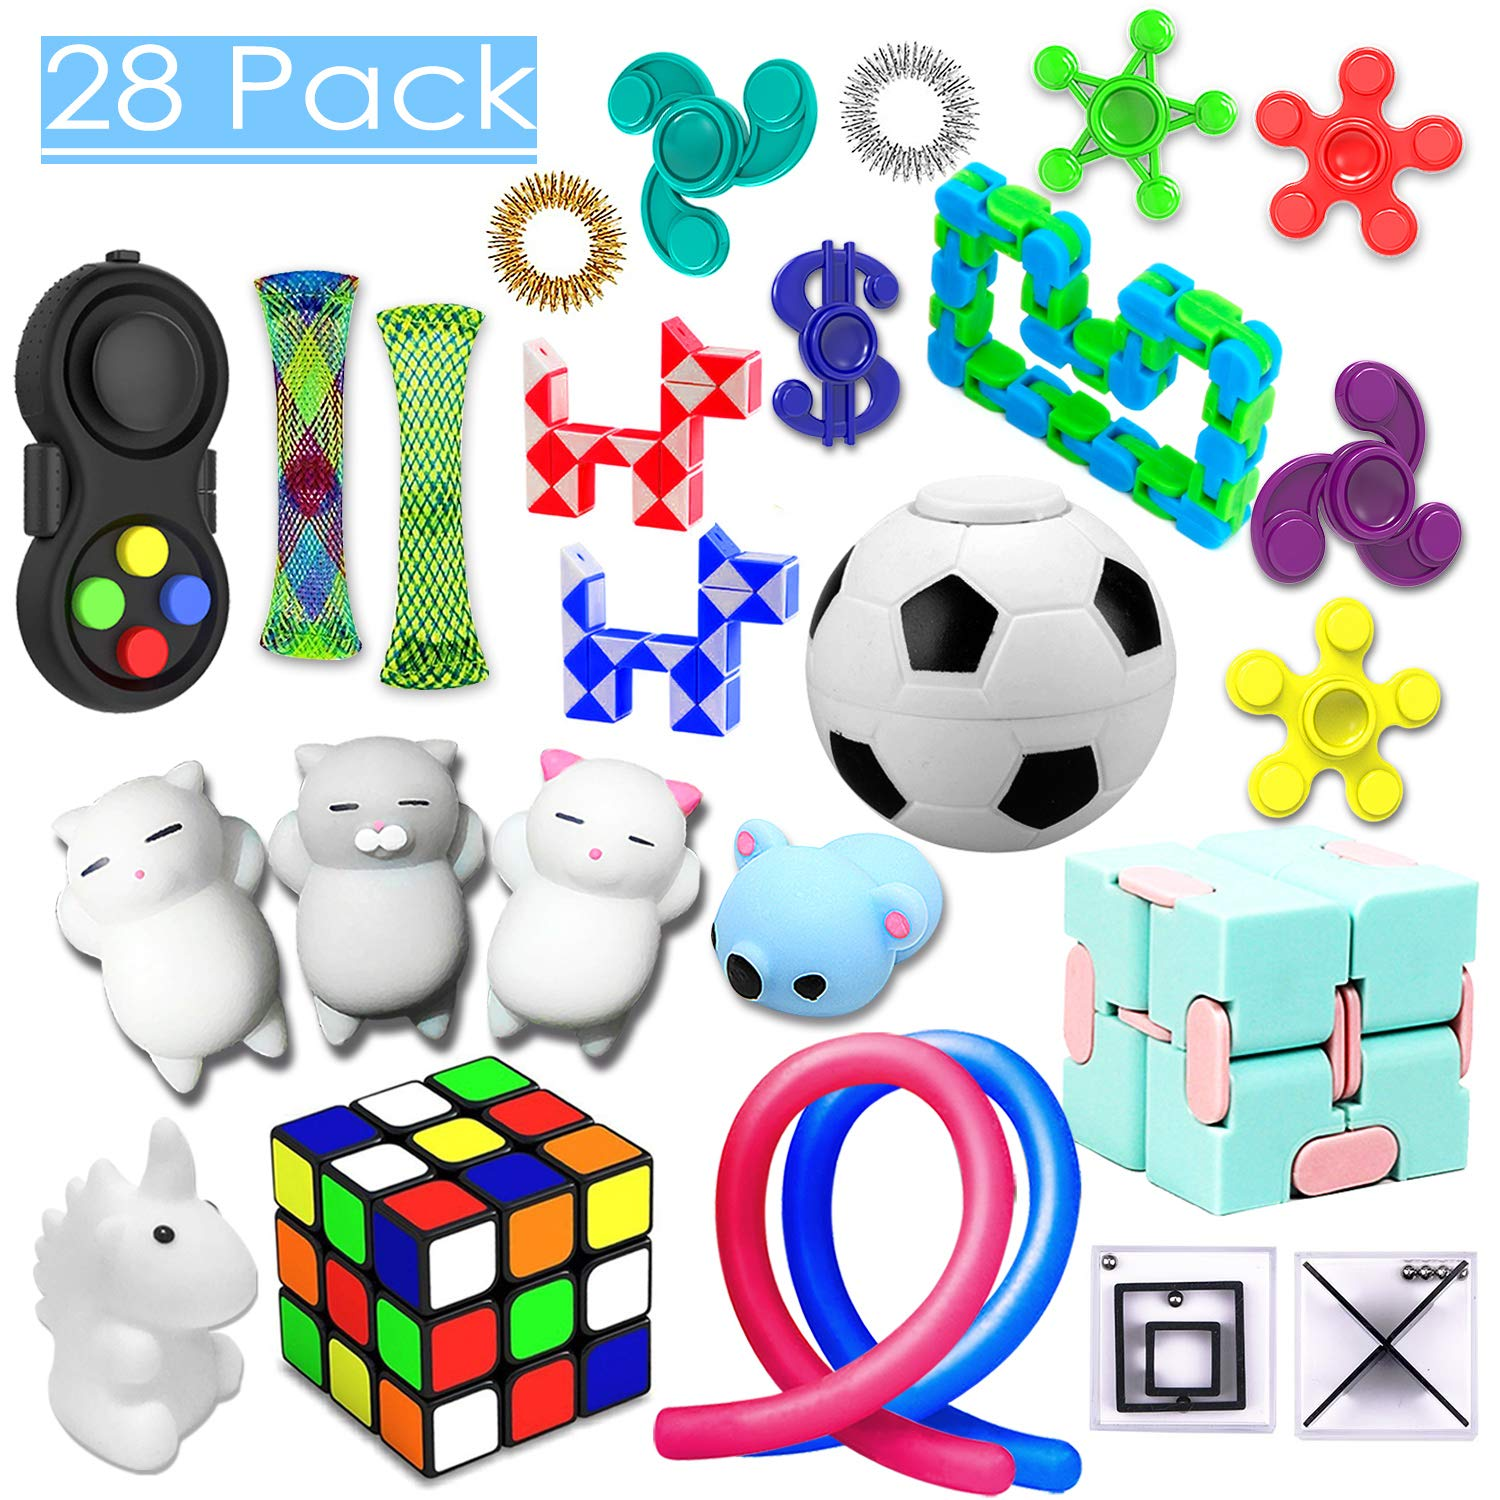 28 Pack Sensory Toys Set, Relieves Stress and Anxiety Fidget Toy